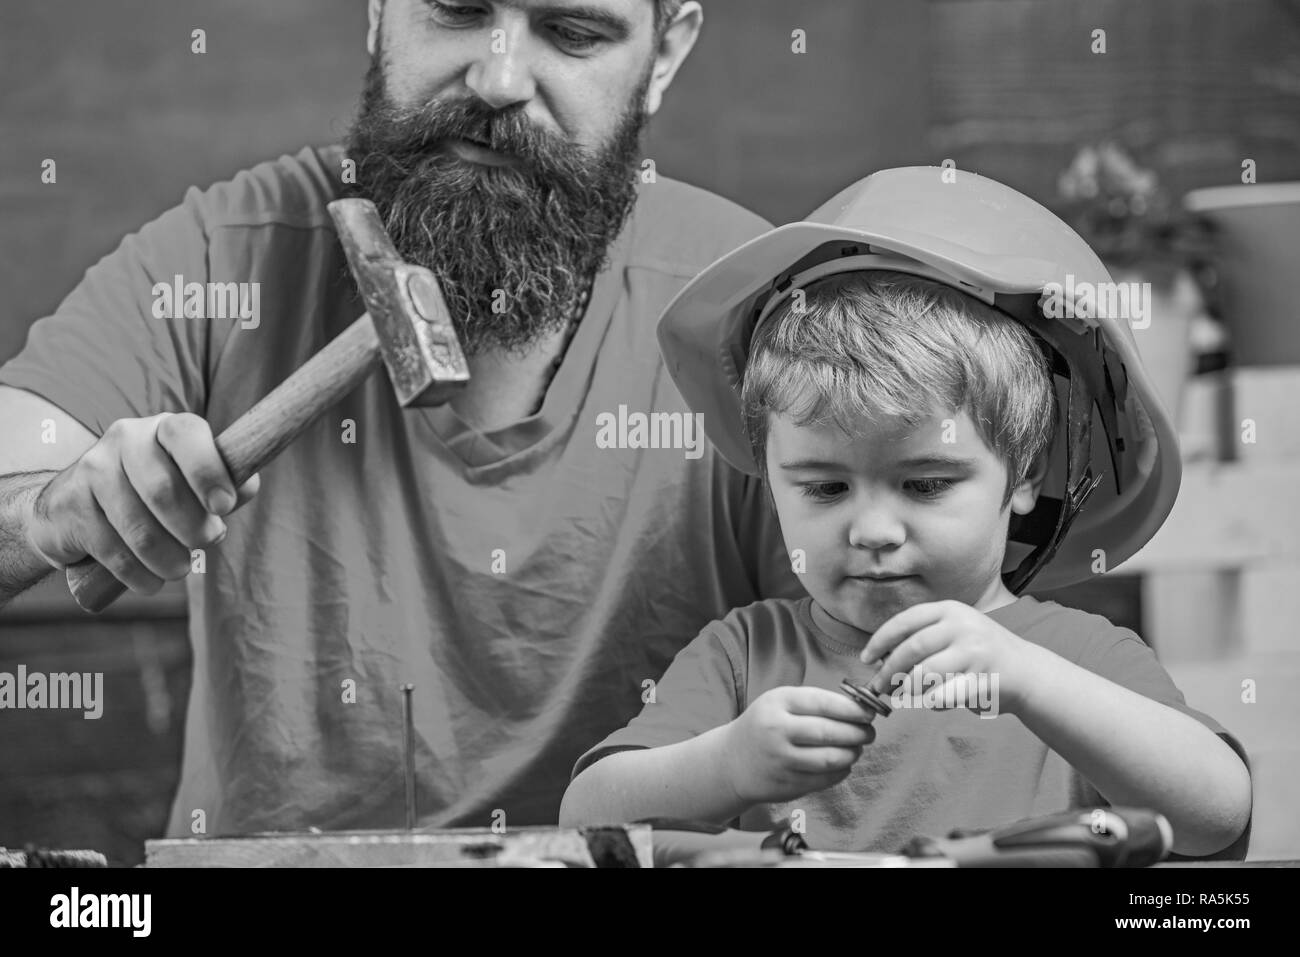 Masculine duties concept. Father, parent with beard teaching little son to use hobnails and hammer. Boy, child busy in protective helmet learning to hammering hobnails with dad. - Stock Image